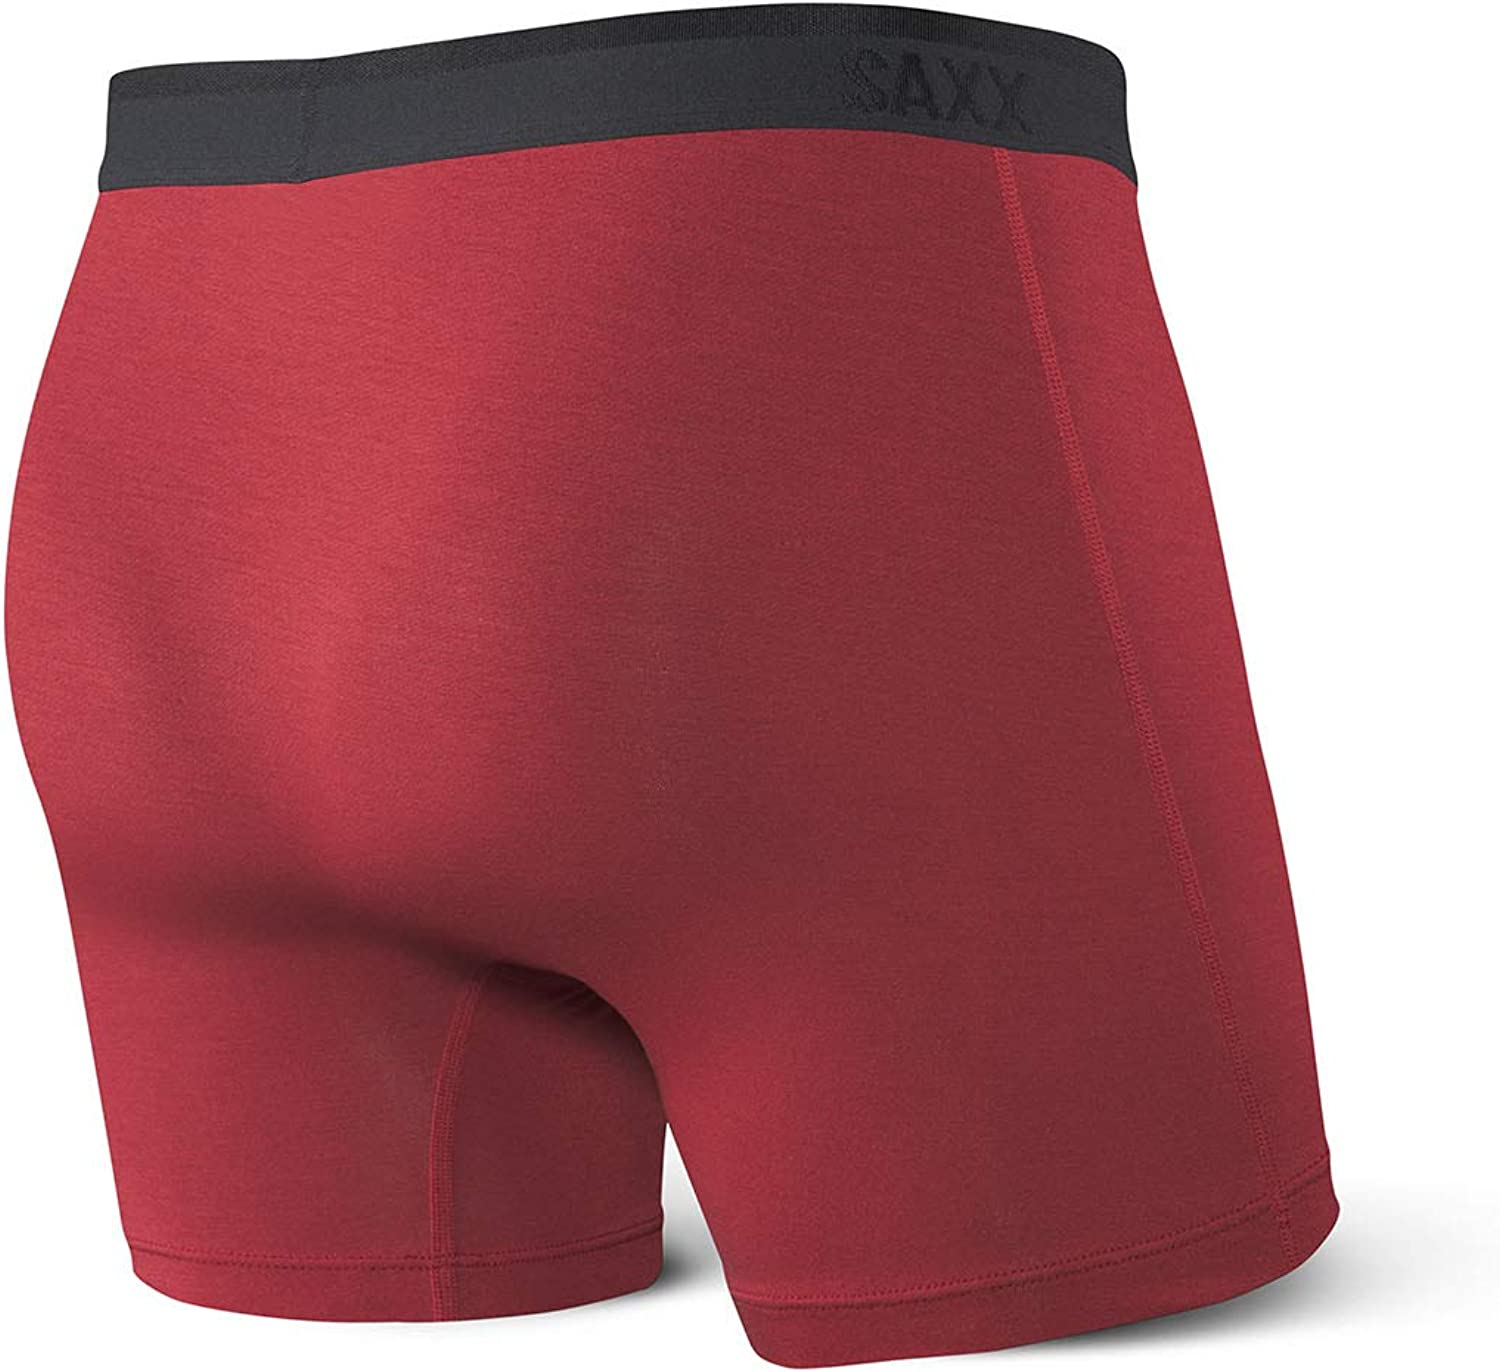 Platinum Men/'s Underwear Saxx Underwear Mens Boxer Briefs Boxer Briefs with Fly and Built-in Ballpark Pouch Support